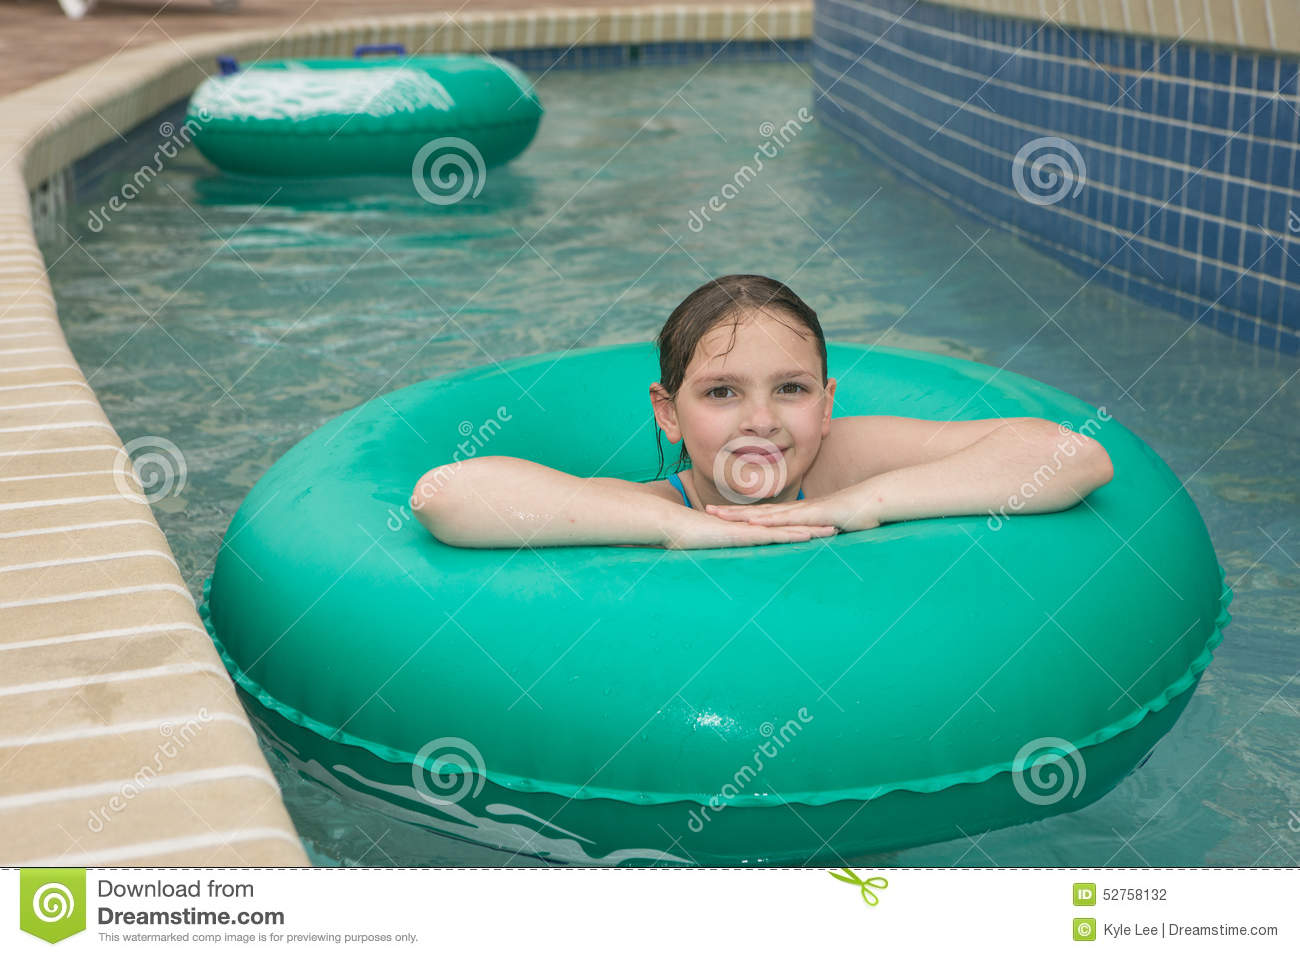 Kid on a lazy river